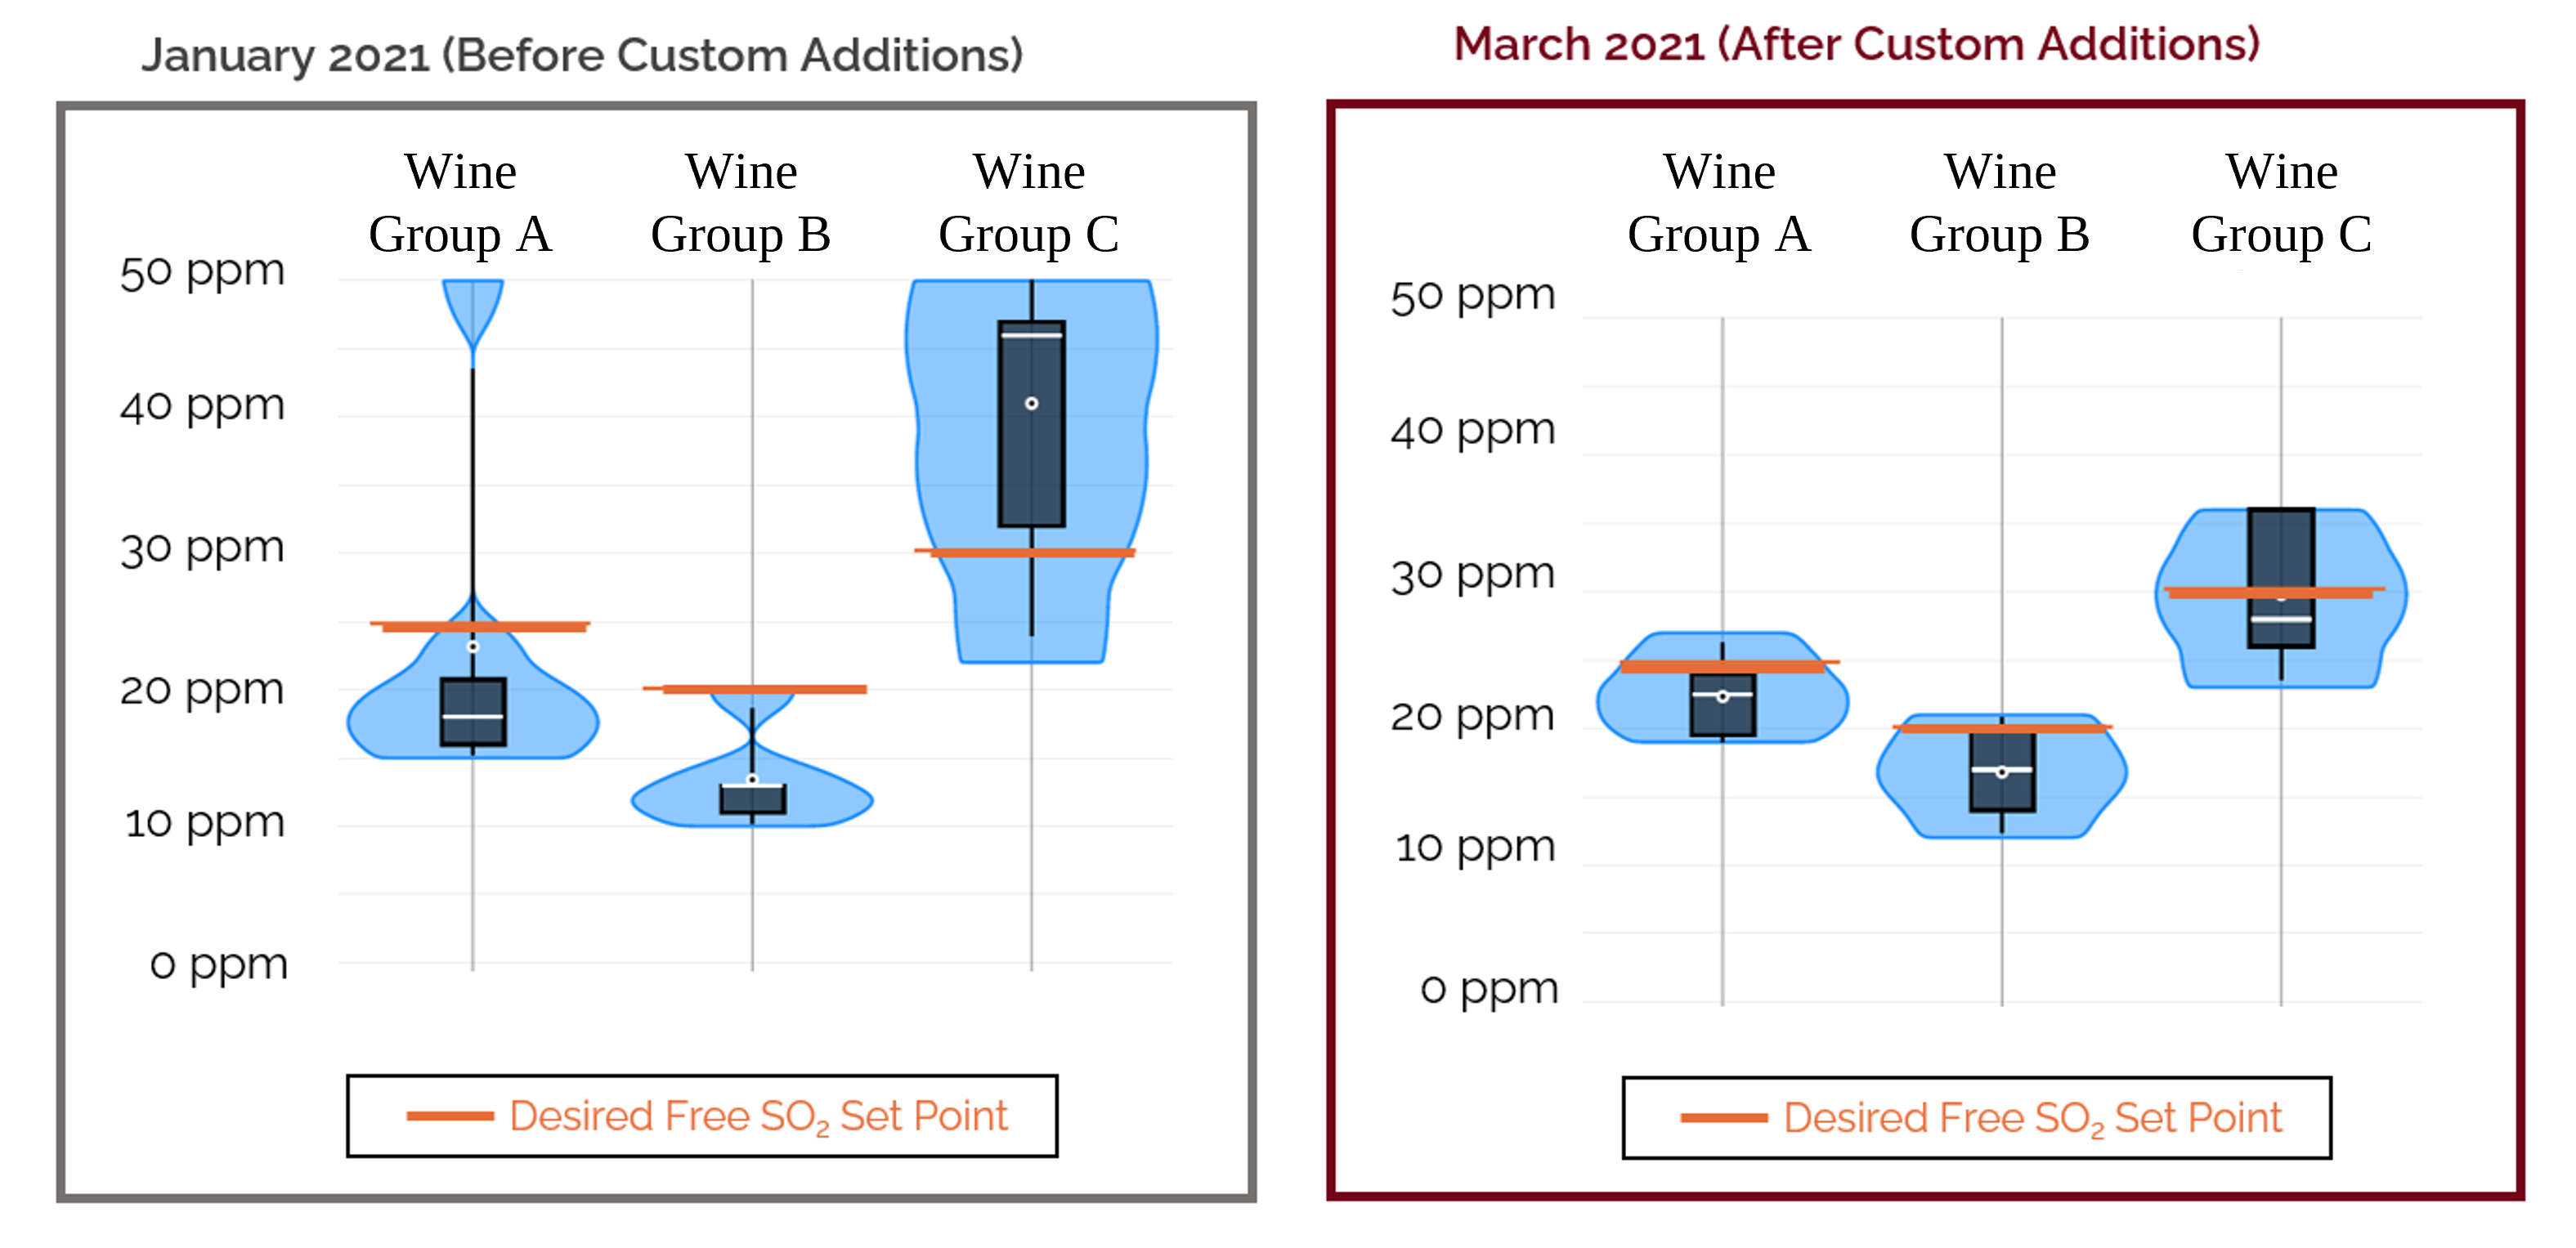 Comparison of free SO2 distribution across barrels in 3 different groups before and after custom sulfite additions.